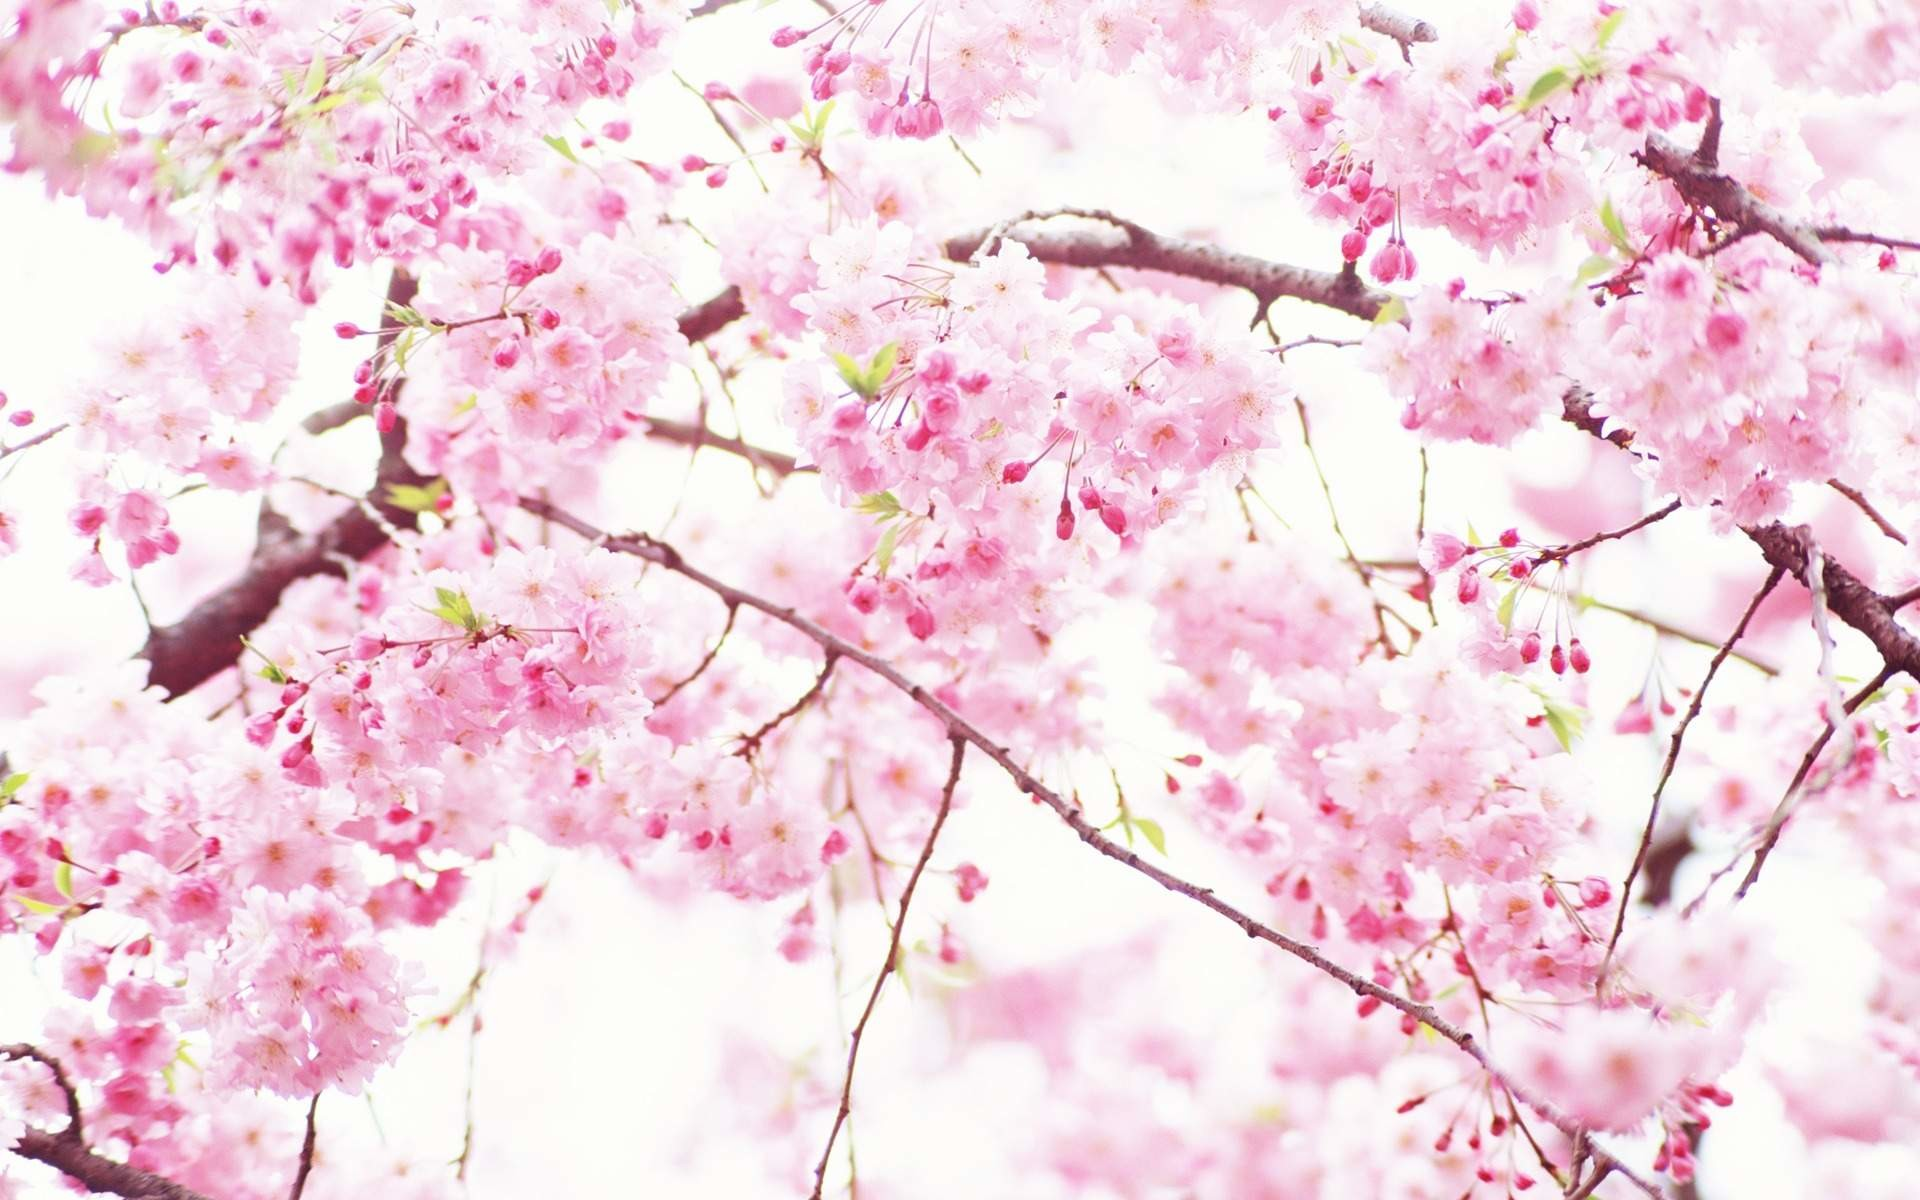 1920x1200, 40 Beautiful Flower Wallpapers Free To Download - Pink And White Blossom - HD Wallpaper